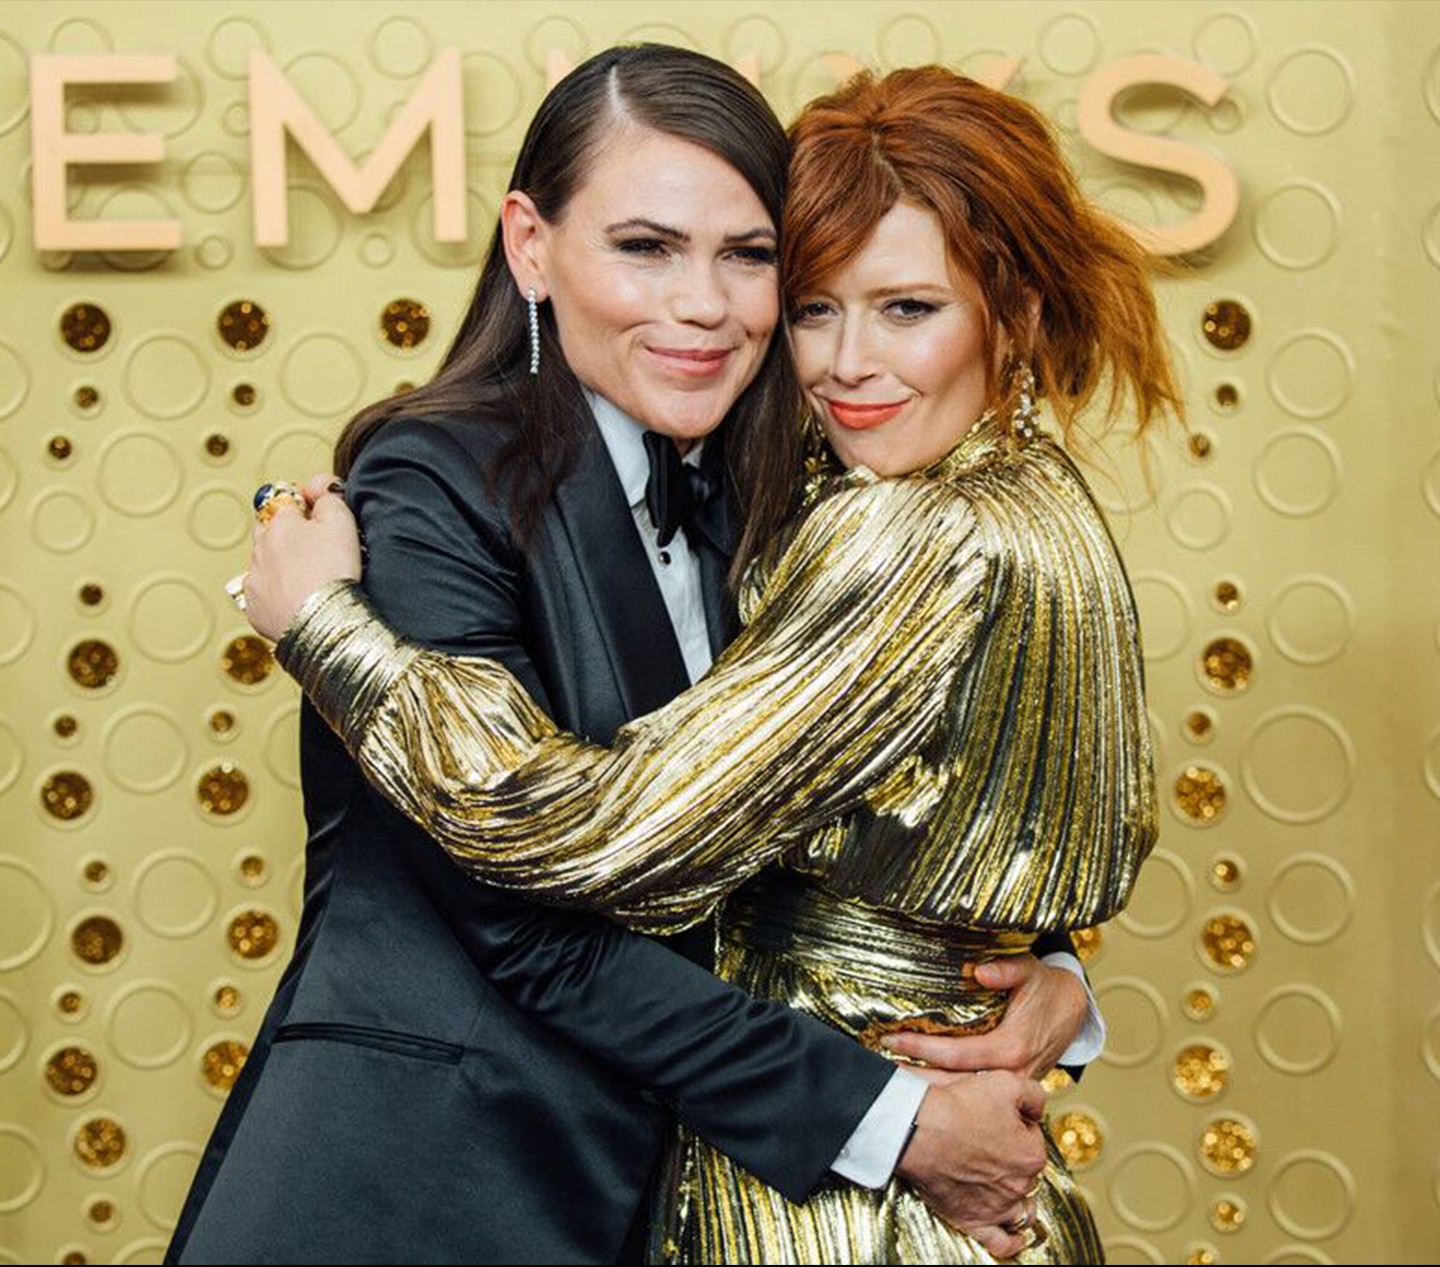 CLEA DUVALL - 71st Emmy Awards